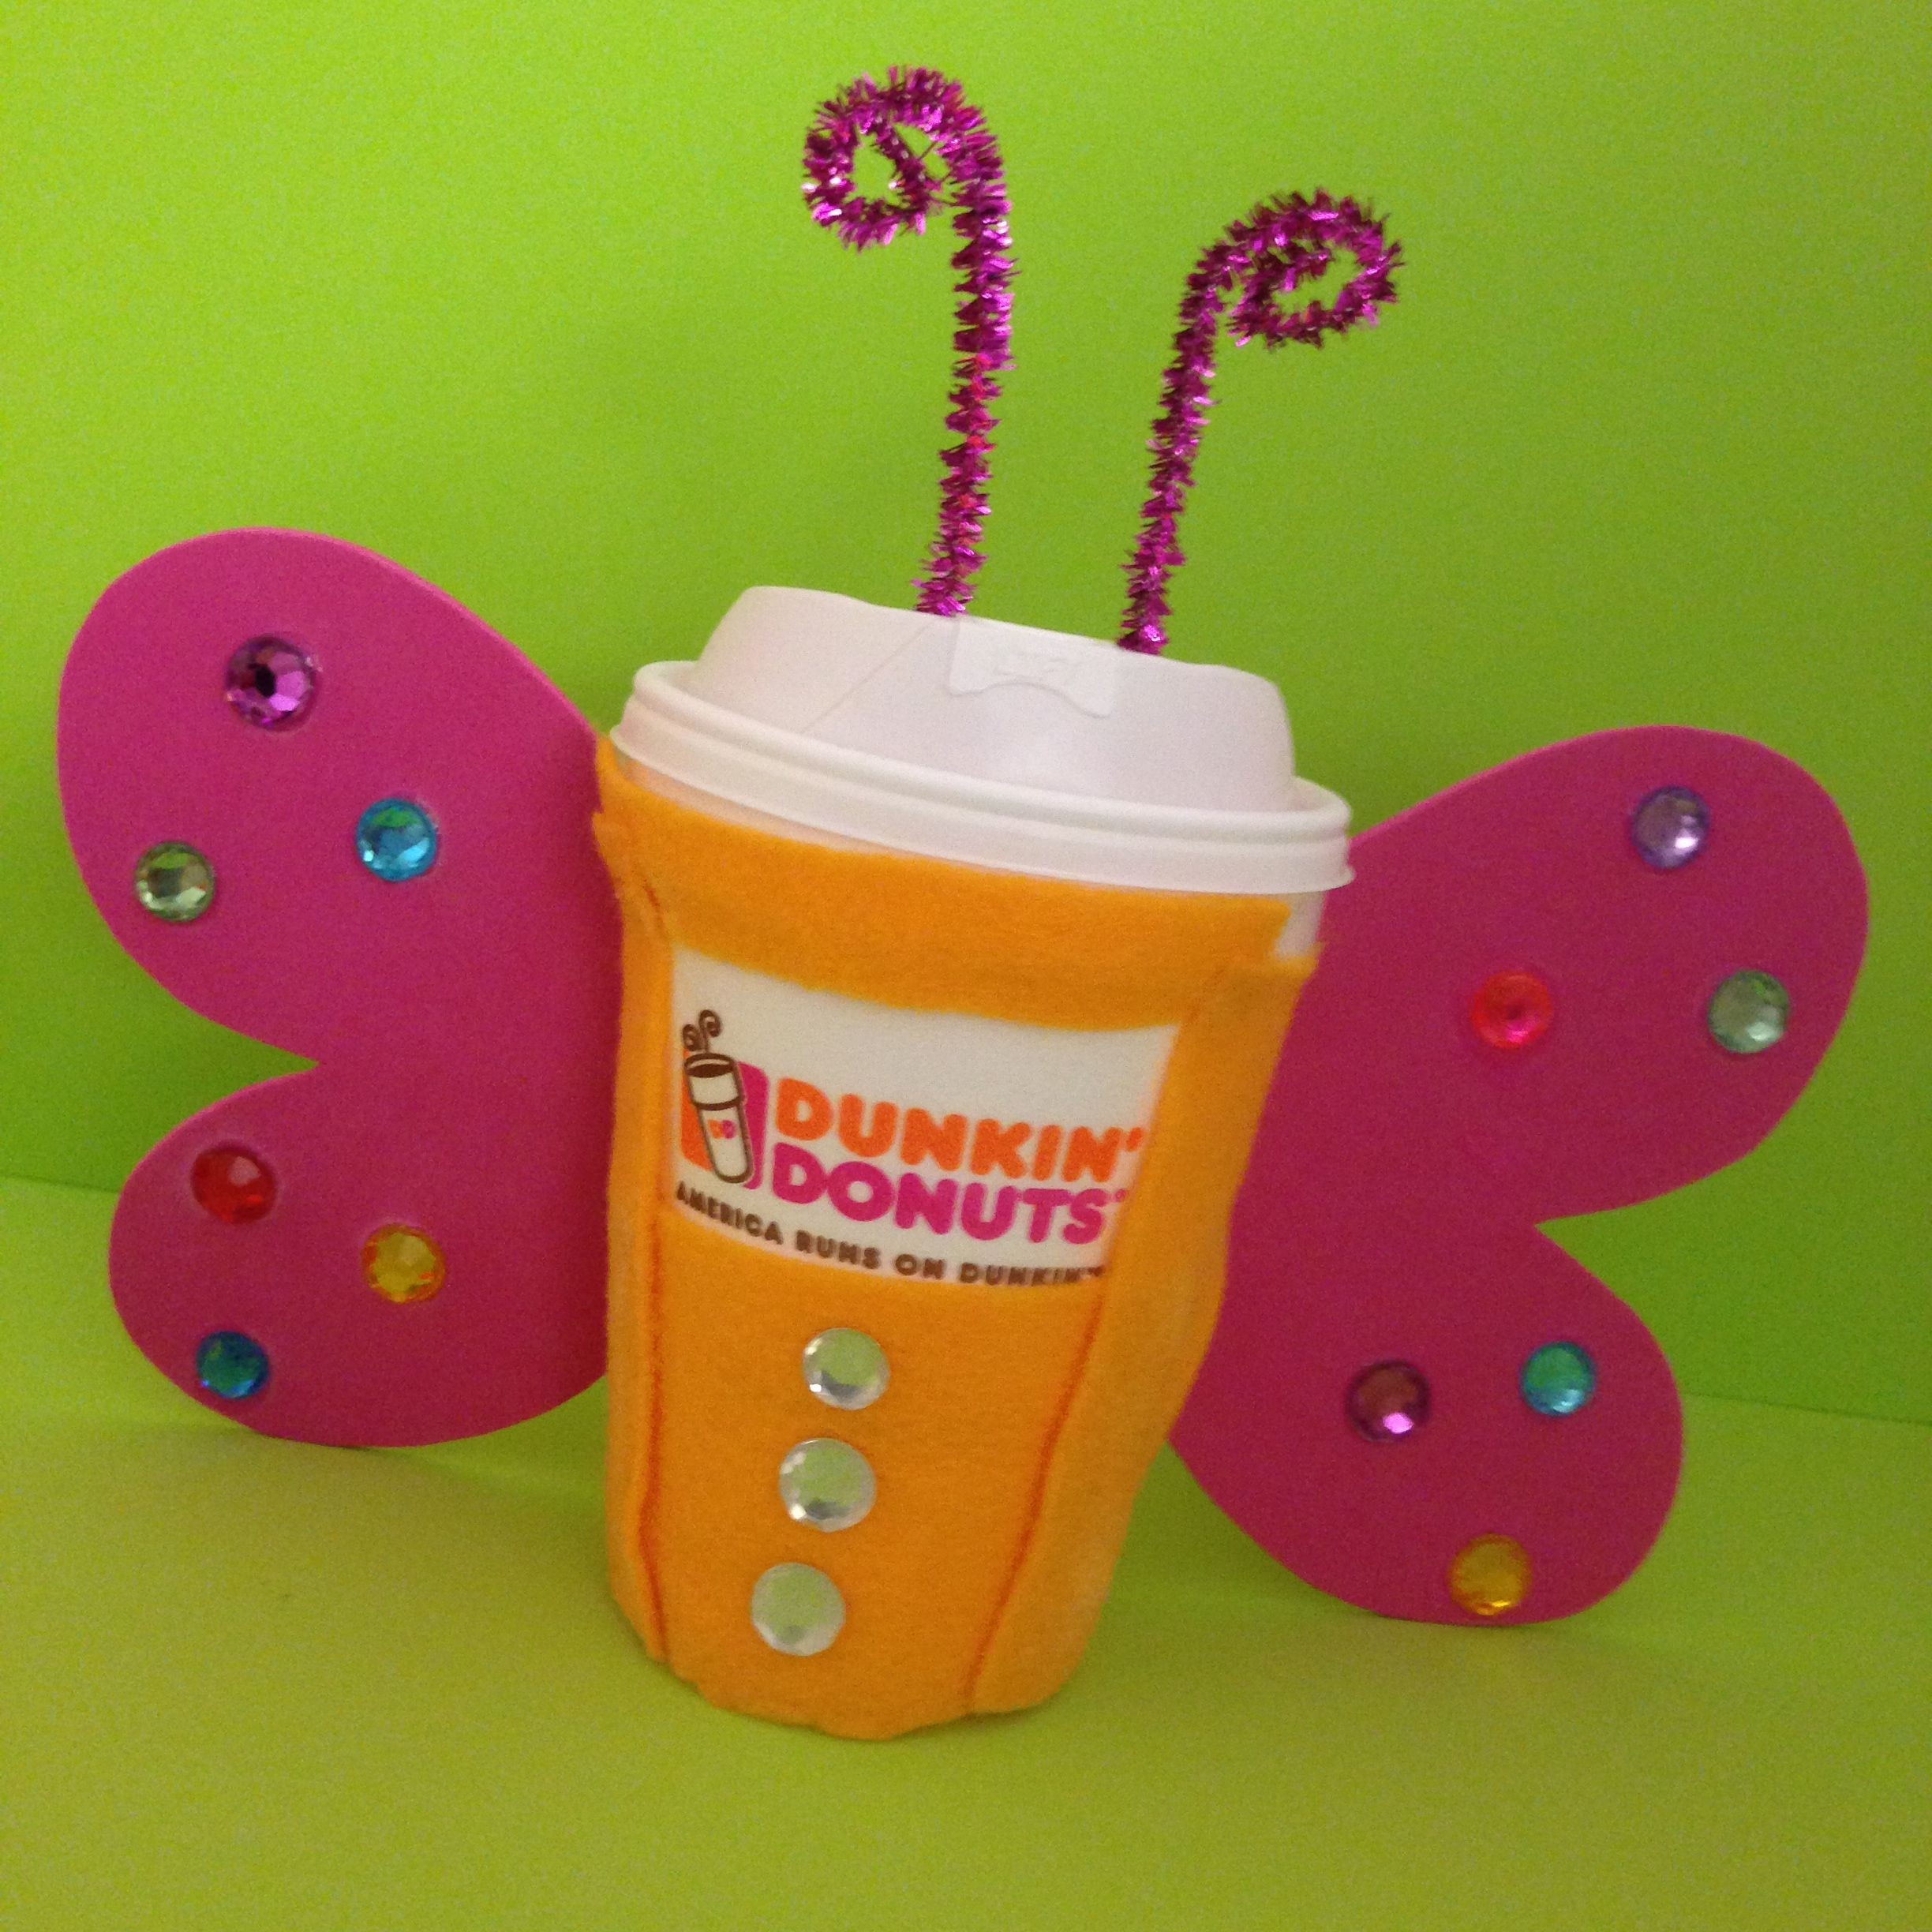 Dress up your DD Coffee cup for Halloween & enter it in